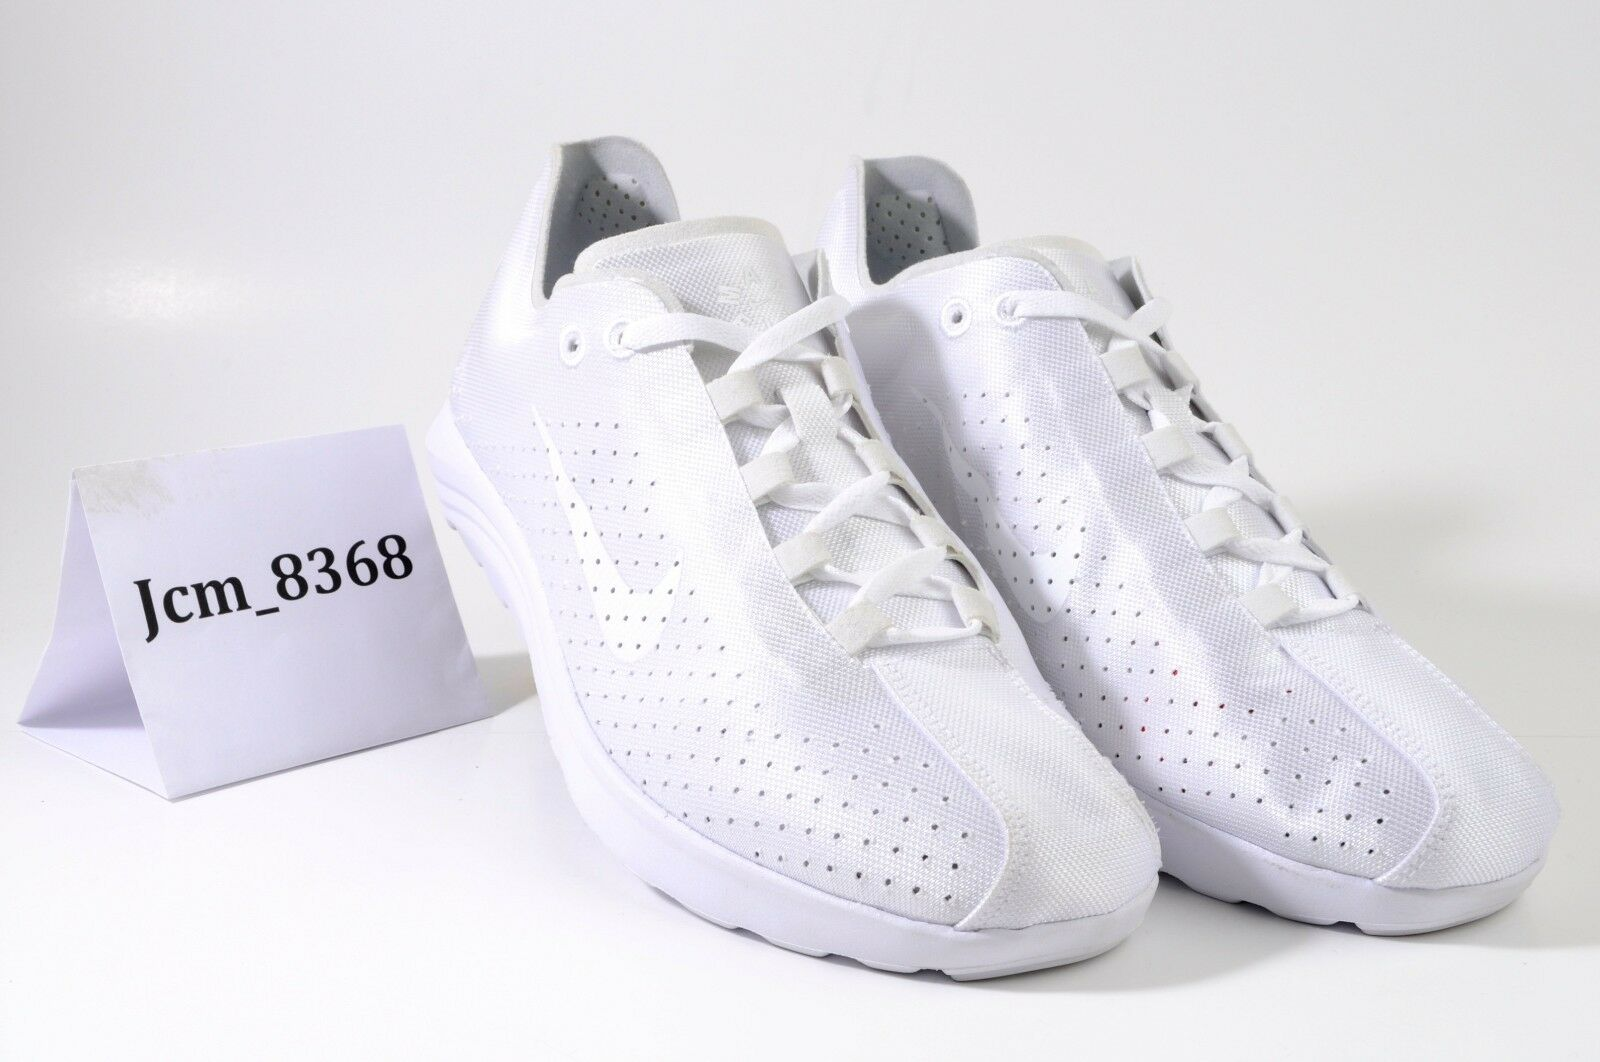 NIKE MAYFLY LITE BR SIZE 8 WHITE PURE PLATINUM 898027-100 NEW WITHOUT BOX